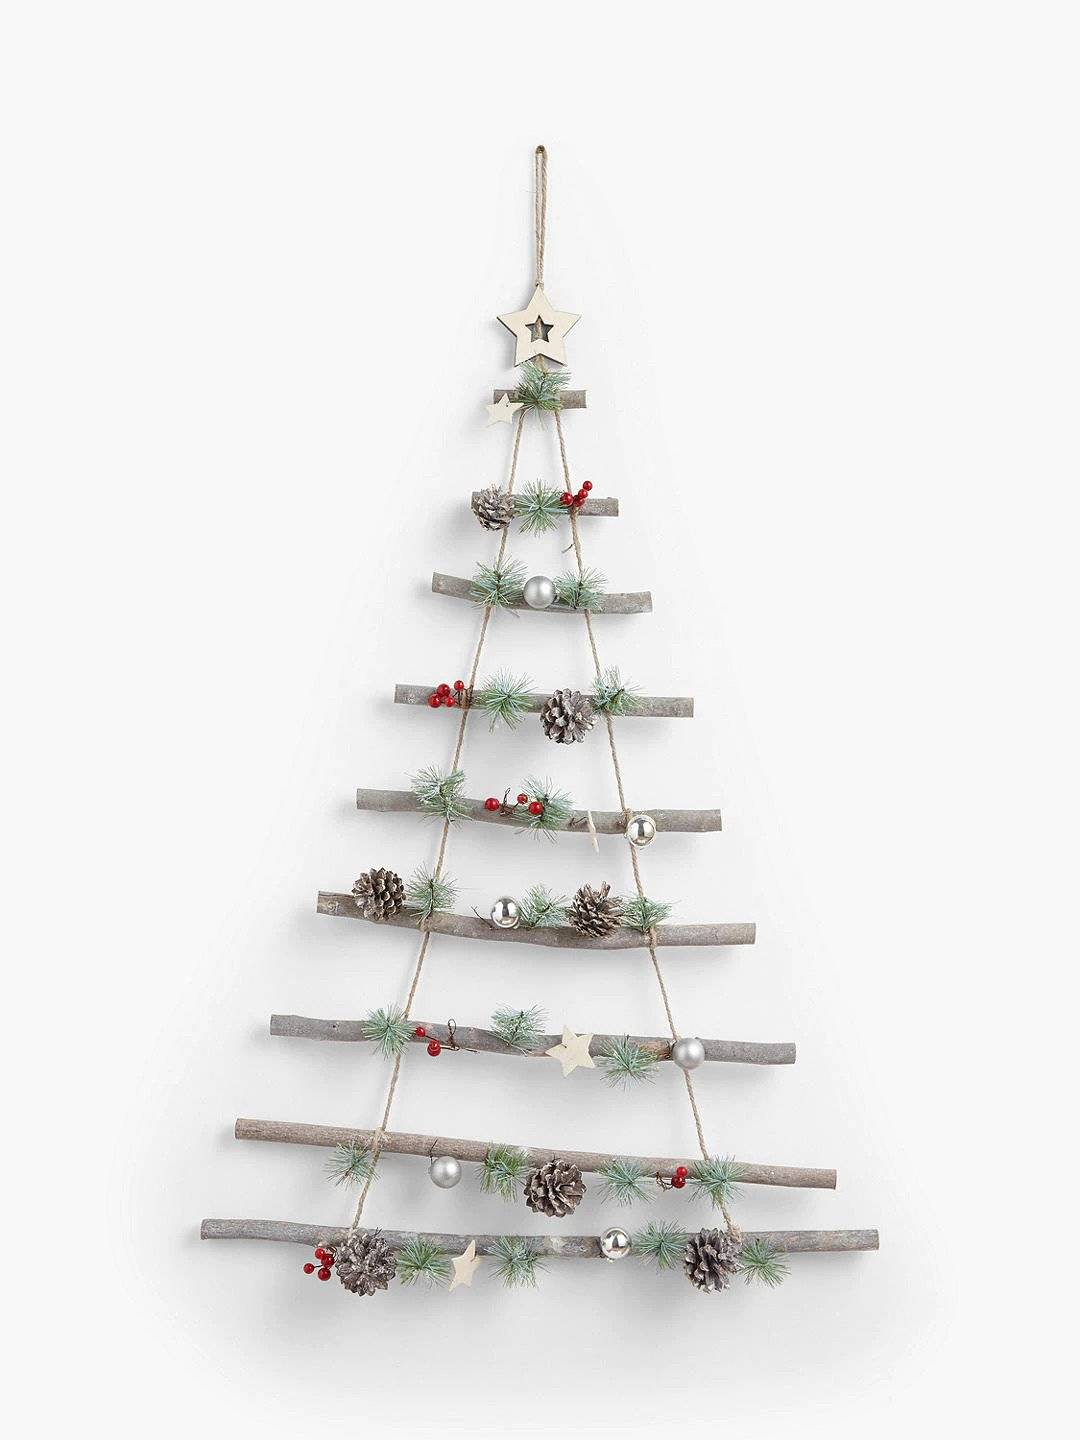 Festive picks from John Lewis and WIN a £100 John Lewis Gift Card